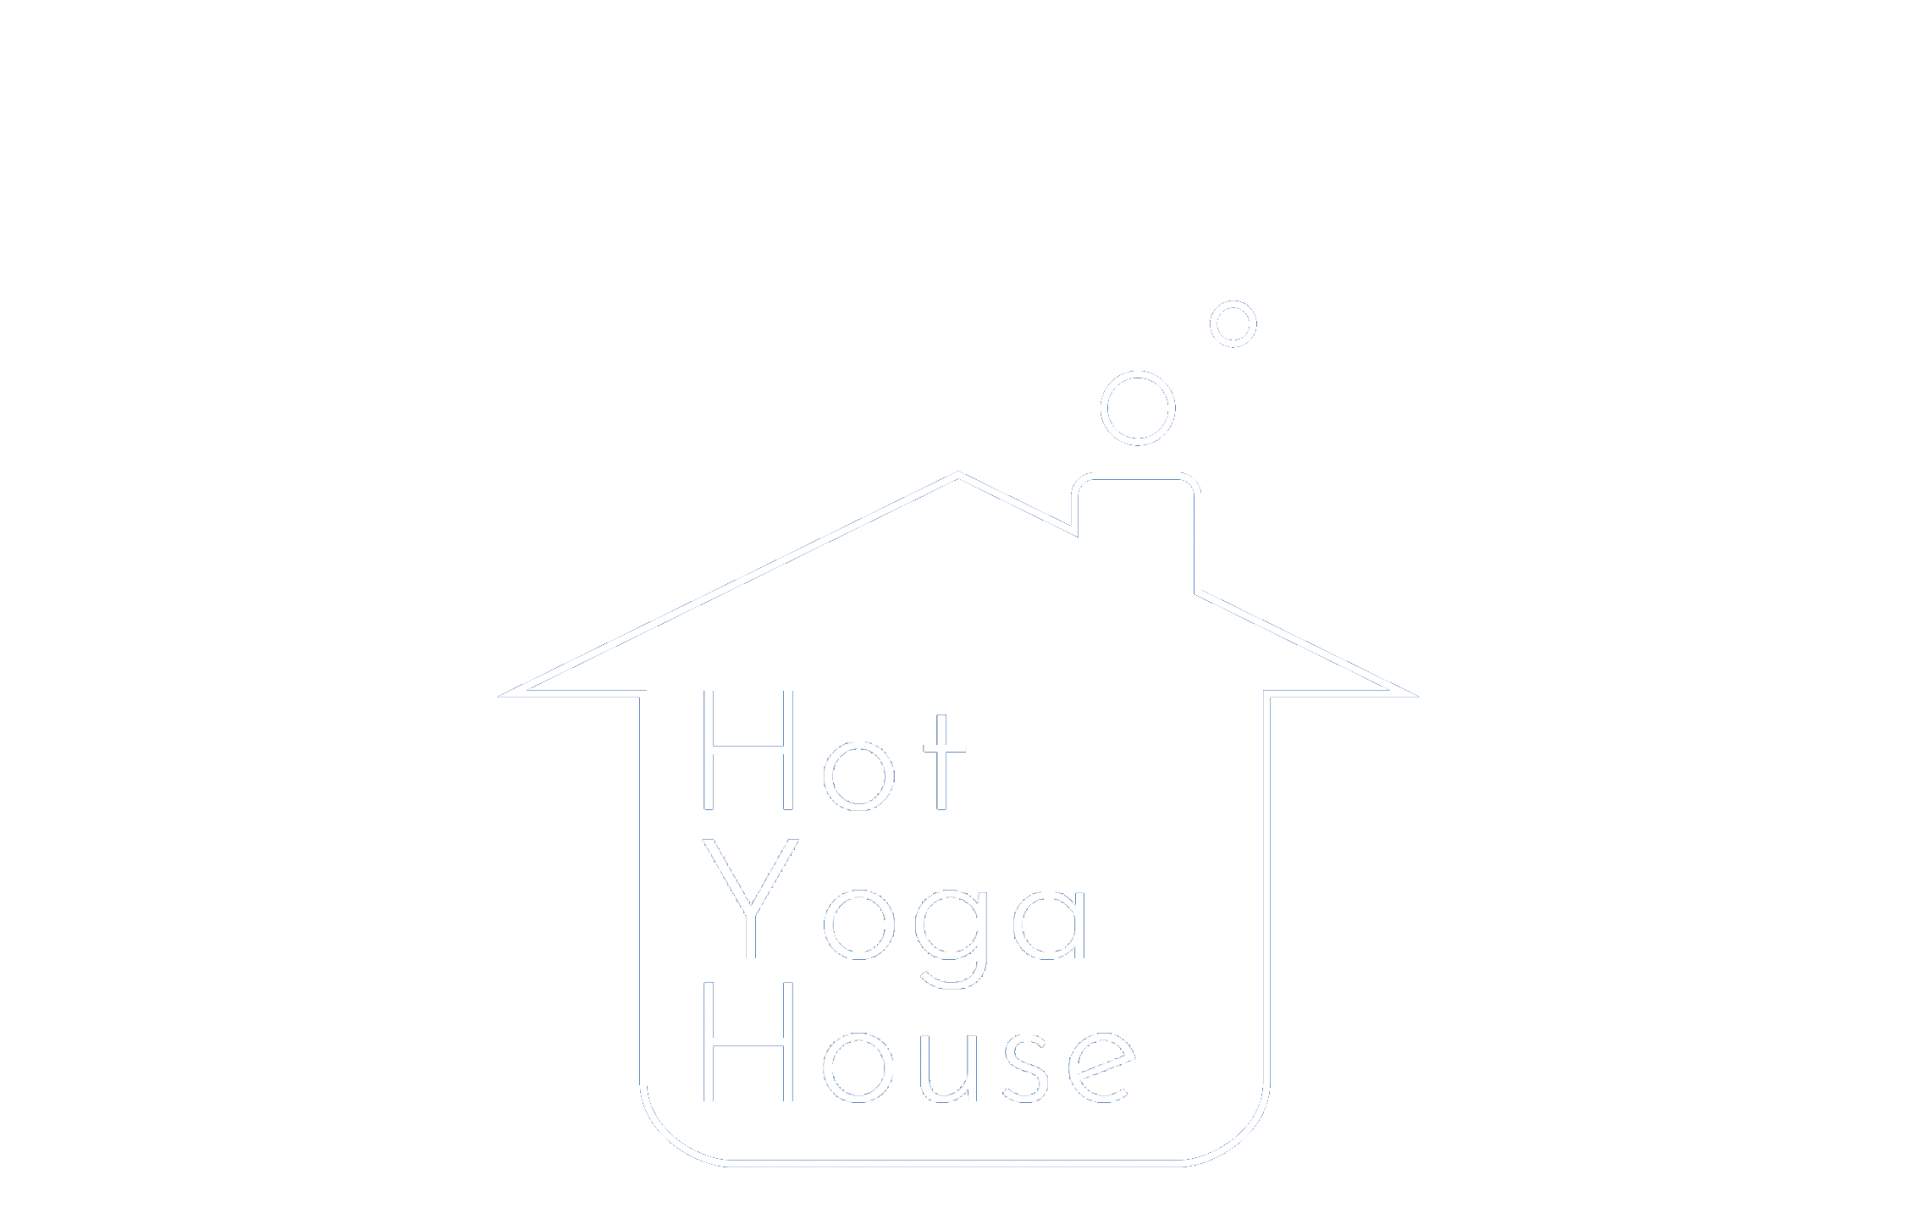 Hot Yoga House